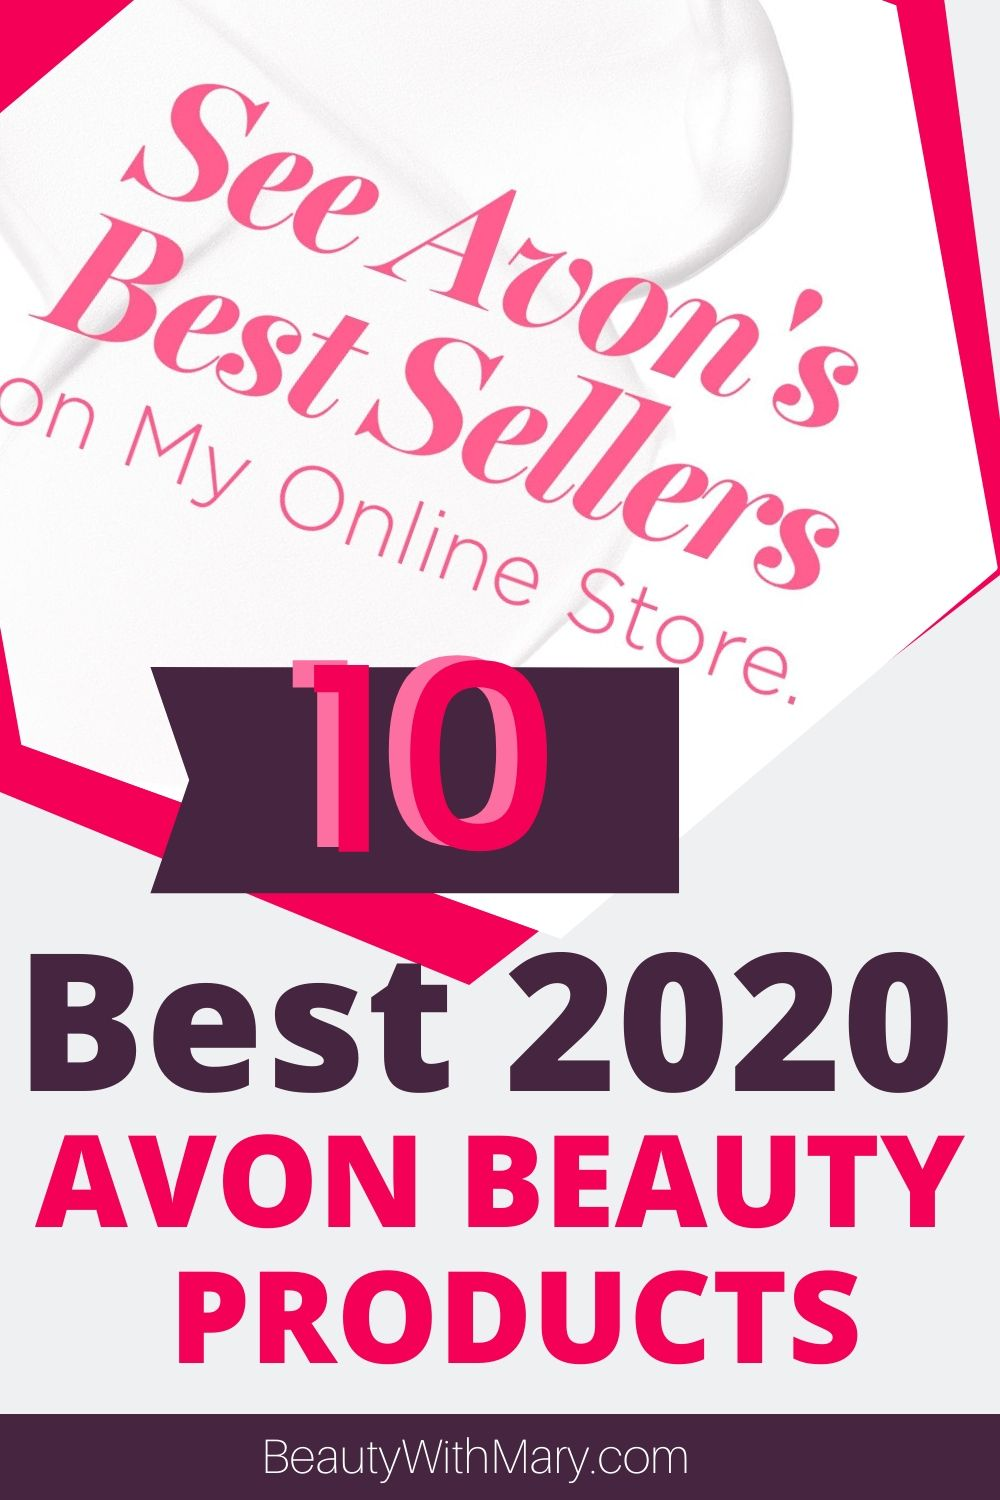 Avon's Best-Selling Products